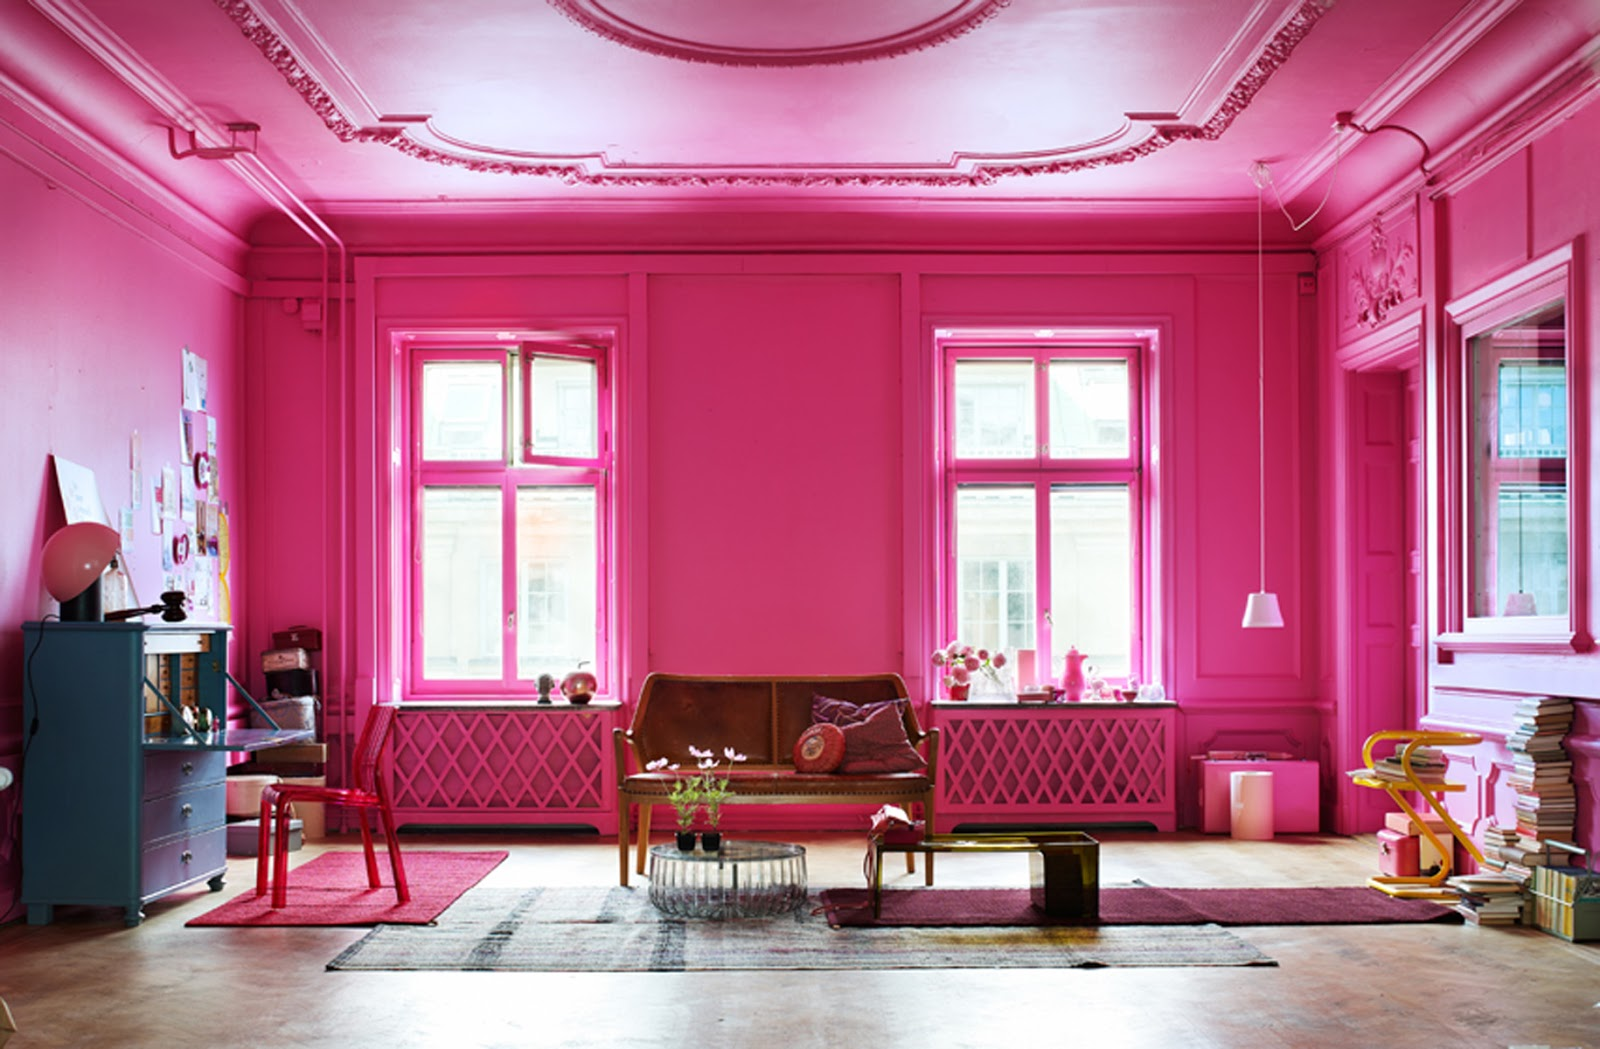 Pink Interior Design 10 Amazing Pink Living Room Interior Design Ideas